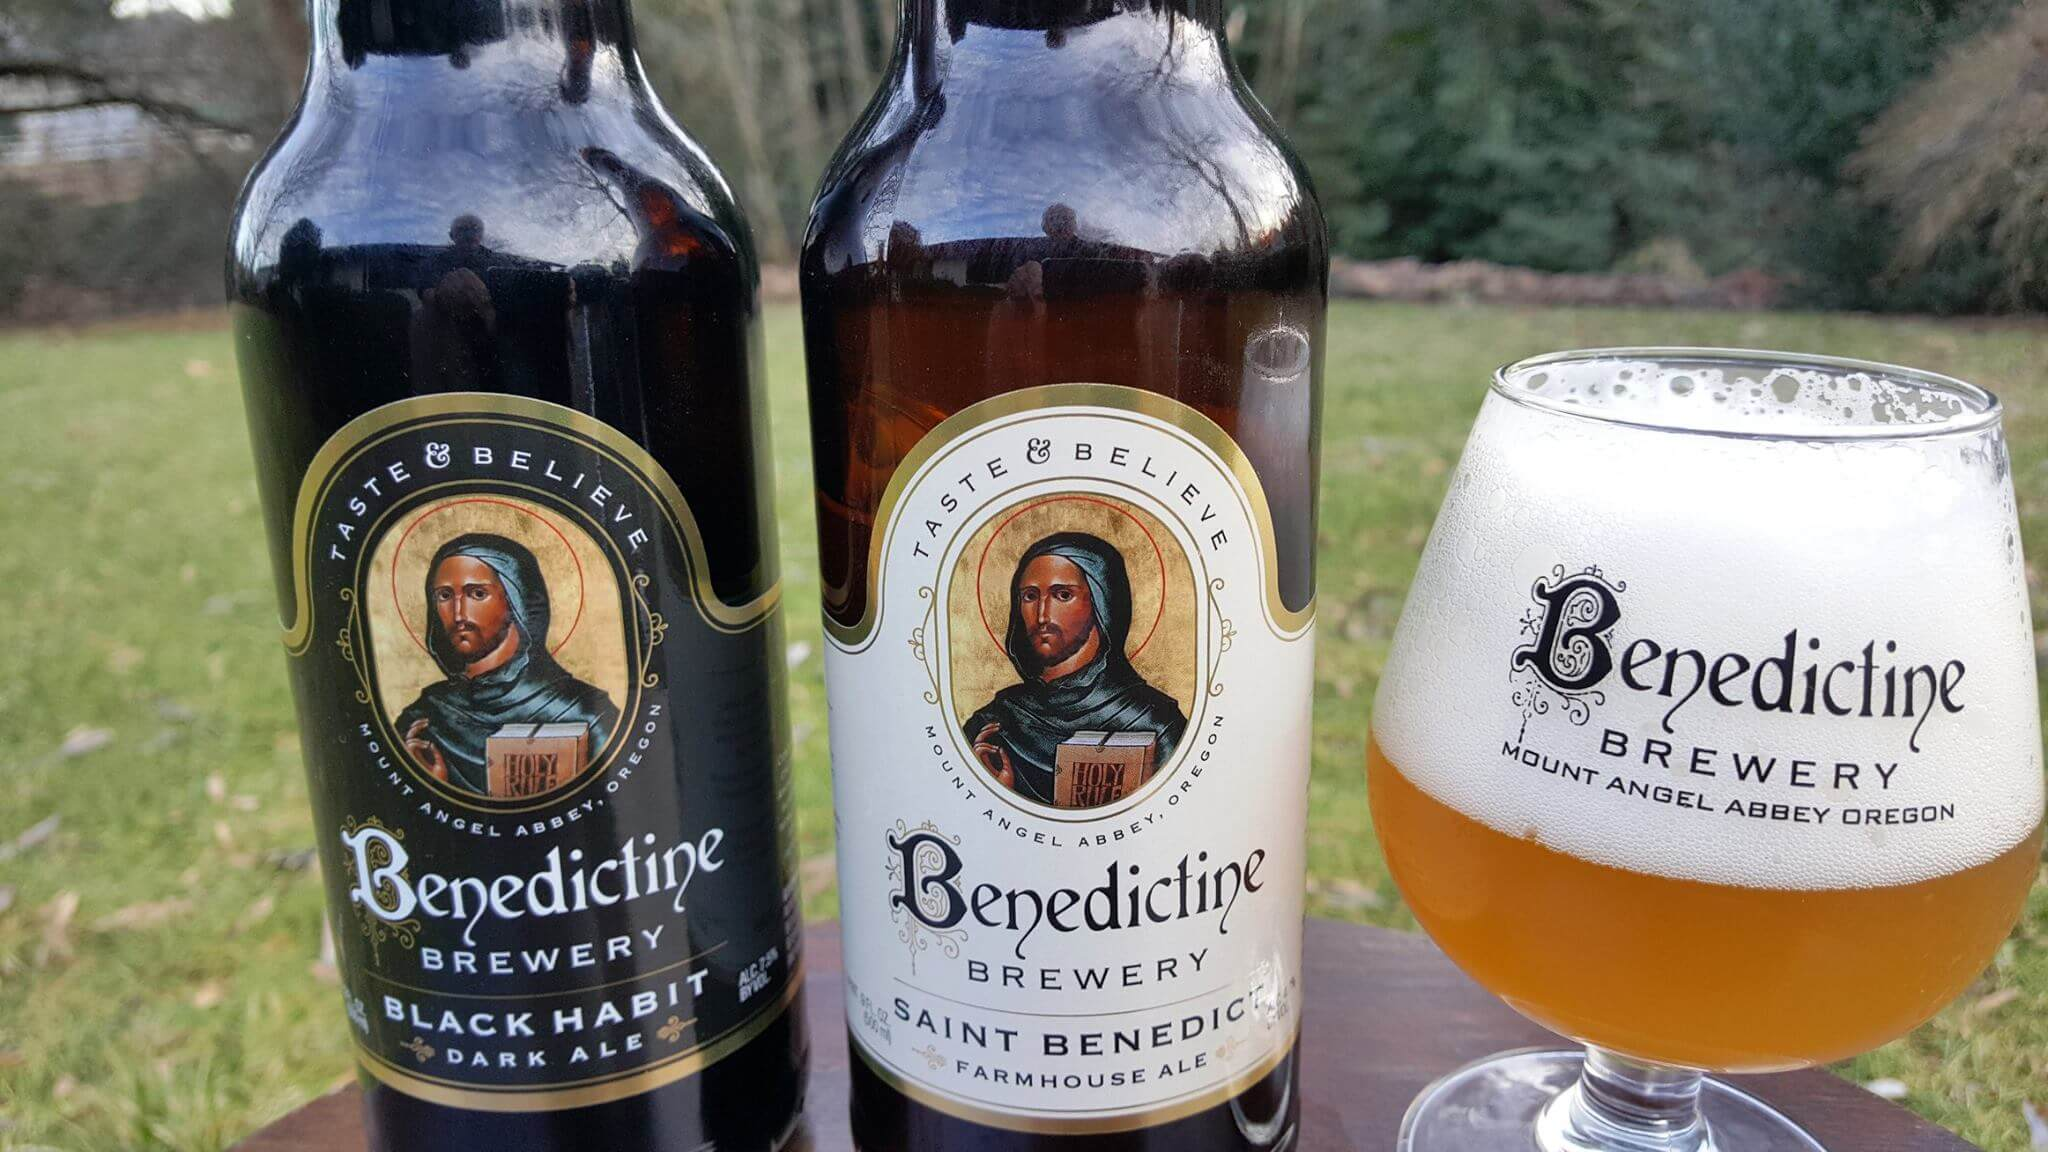 Benedictine Brewery Black Habit